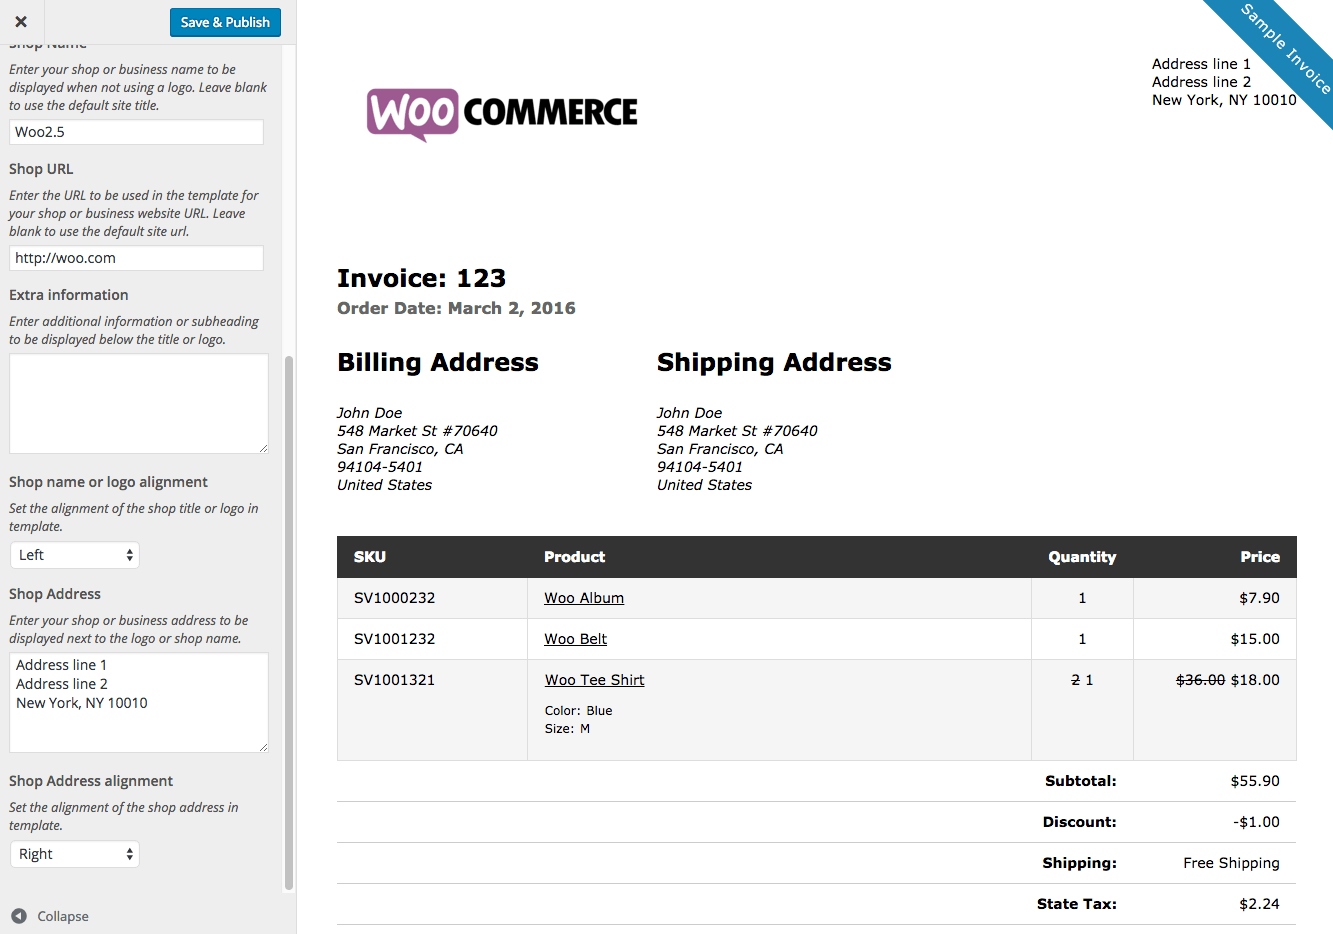 Atvingus  Remarkable Print Invoices Amp Packing Lists  Woocommerce With Interesting Woocommerce Print Invoices  Packing Lists Customizer With Astonishing Example Proforma Invoice Also Create Your Own Invoice Template In Addition Customised Invoice Book And Printable Invoice Template Free As Well As Print Invoice Amazon Additionally Project Invoice From Woocommercecom With Atvingus  Interesting Print Invoices Amp Packing Lists  Woocommerce With Astonishing Woocommerce Print Invoices  Packing Lists Customizer And Remarkable Example Proforma Invoice Also Create Your Own Invoice Template In Addition Customised Invoice Book From Woocommercecom